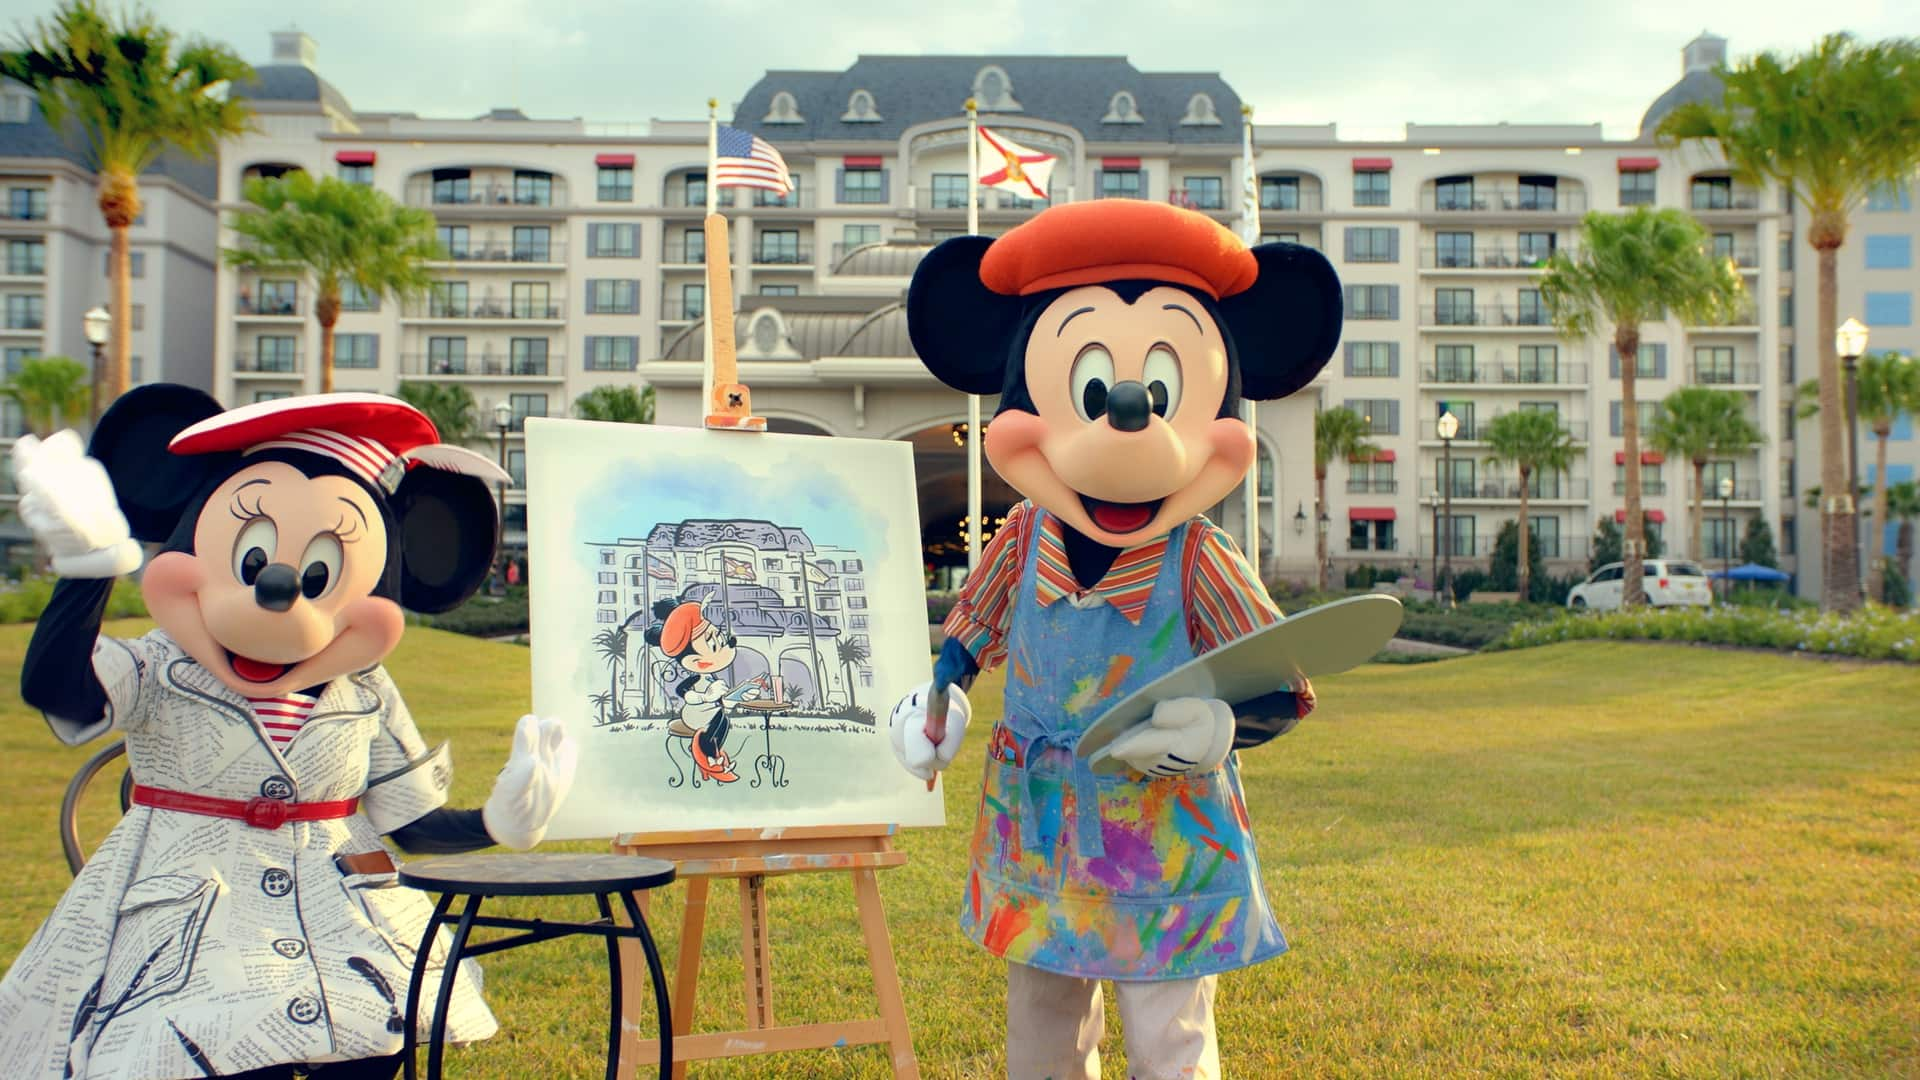 Artist Mickey Mouse paints a portrait of Minnie Mouse in the front lawn at Disney's Riviera Resort